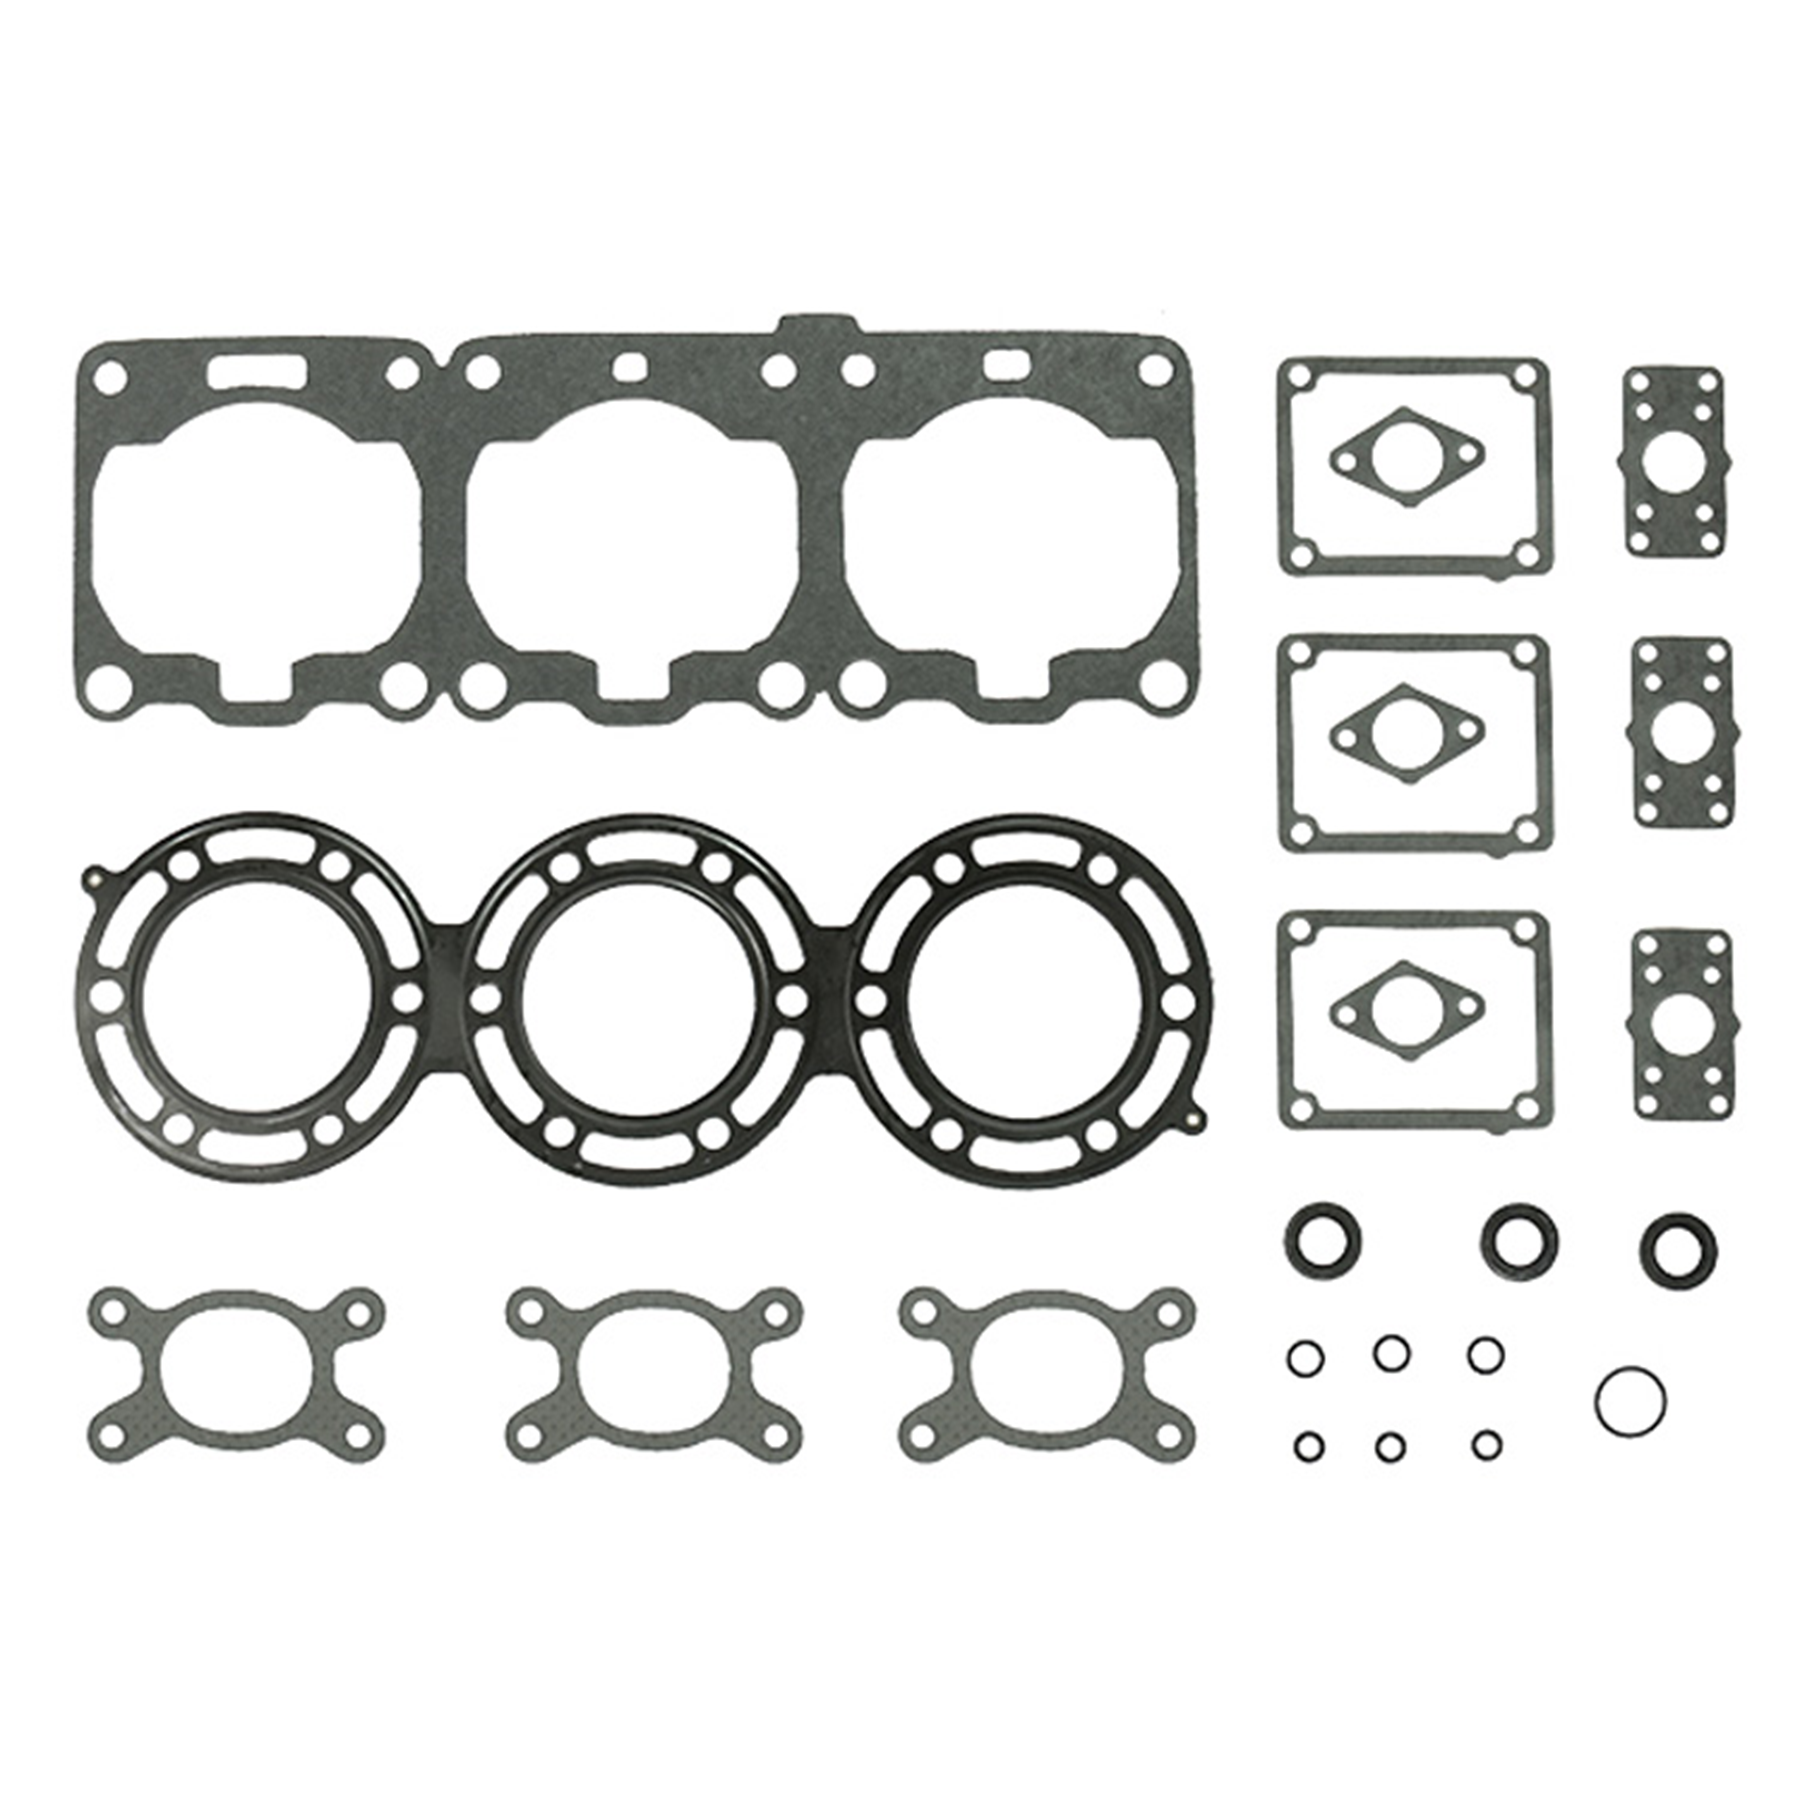 Top End Gasket Set - Yamaha (700 SX Viper 02-06)